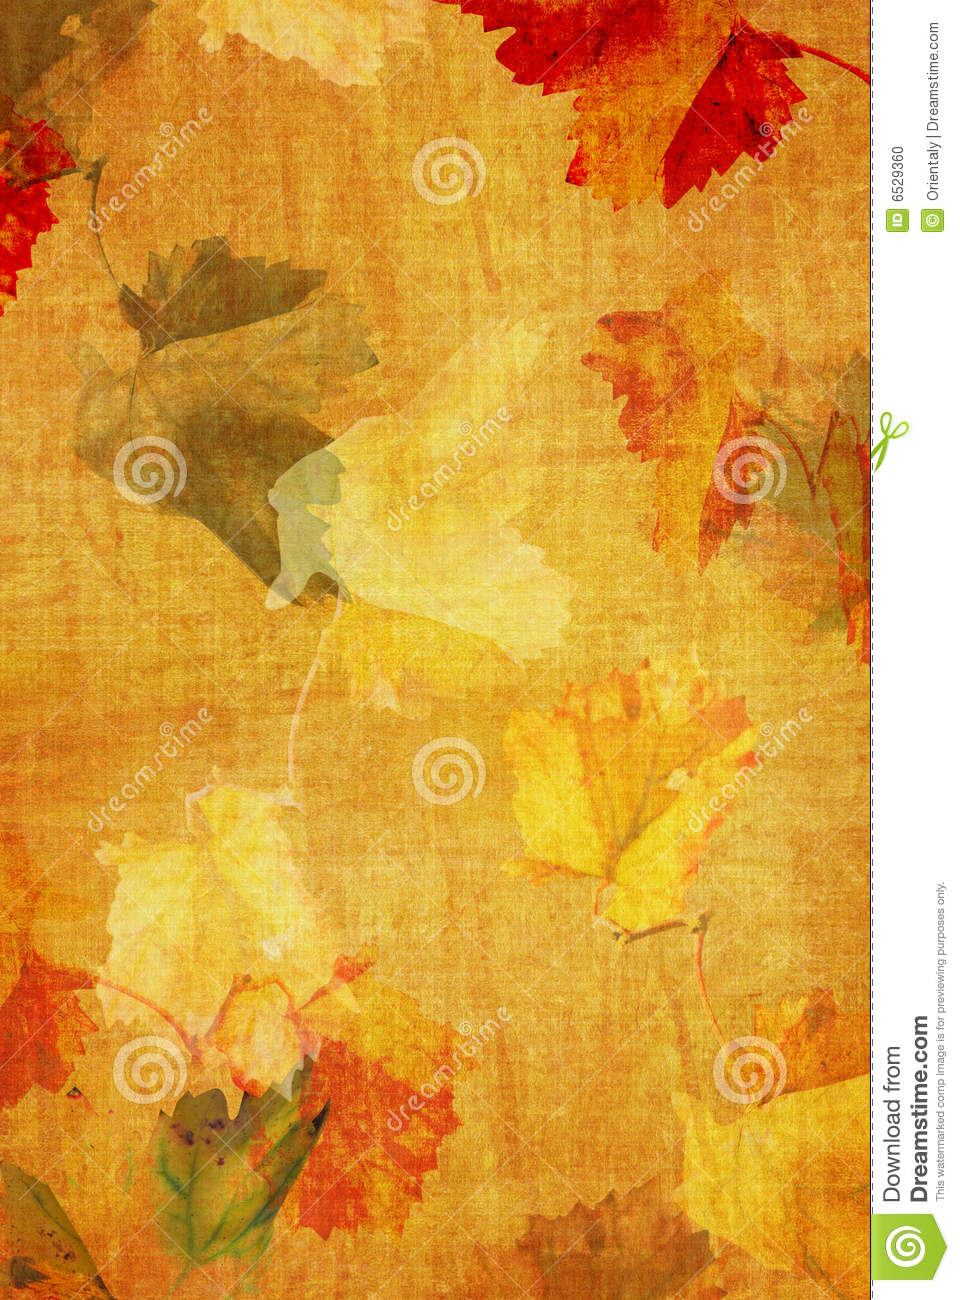 Fall Grunge color texture